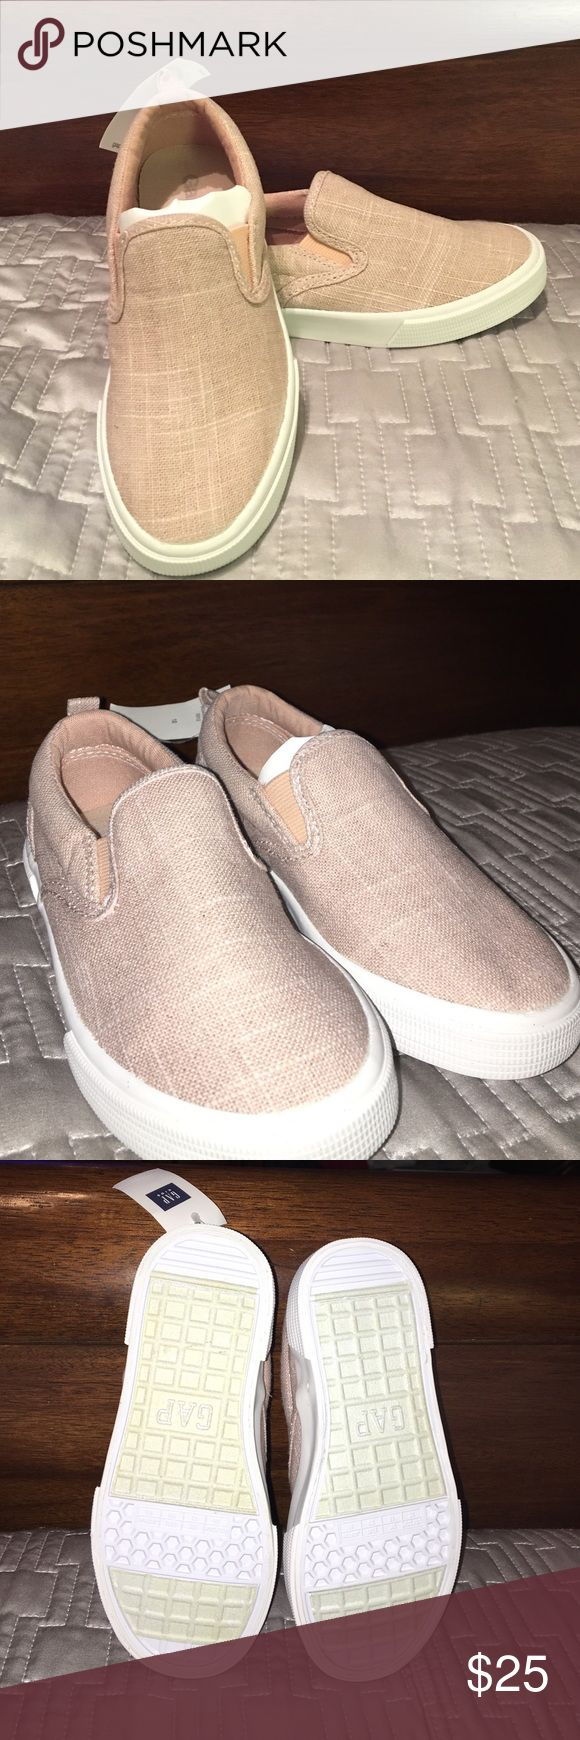 NWT || GAP || Marbled Woven Slip-On Tennis Shoes GAP slip-on tennis shoes. They are a pinkish color with pieces of glitter shinning throughout them. Girls size 12. Smoke Free Home. GAP Shoes Sneakers